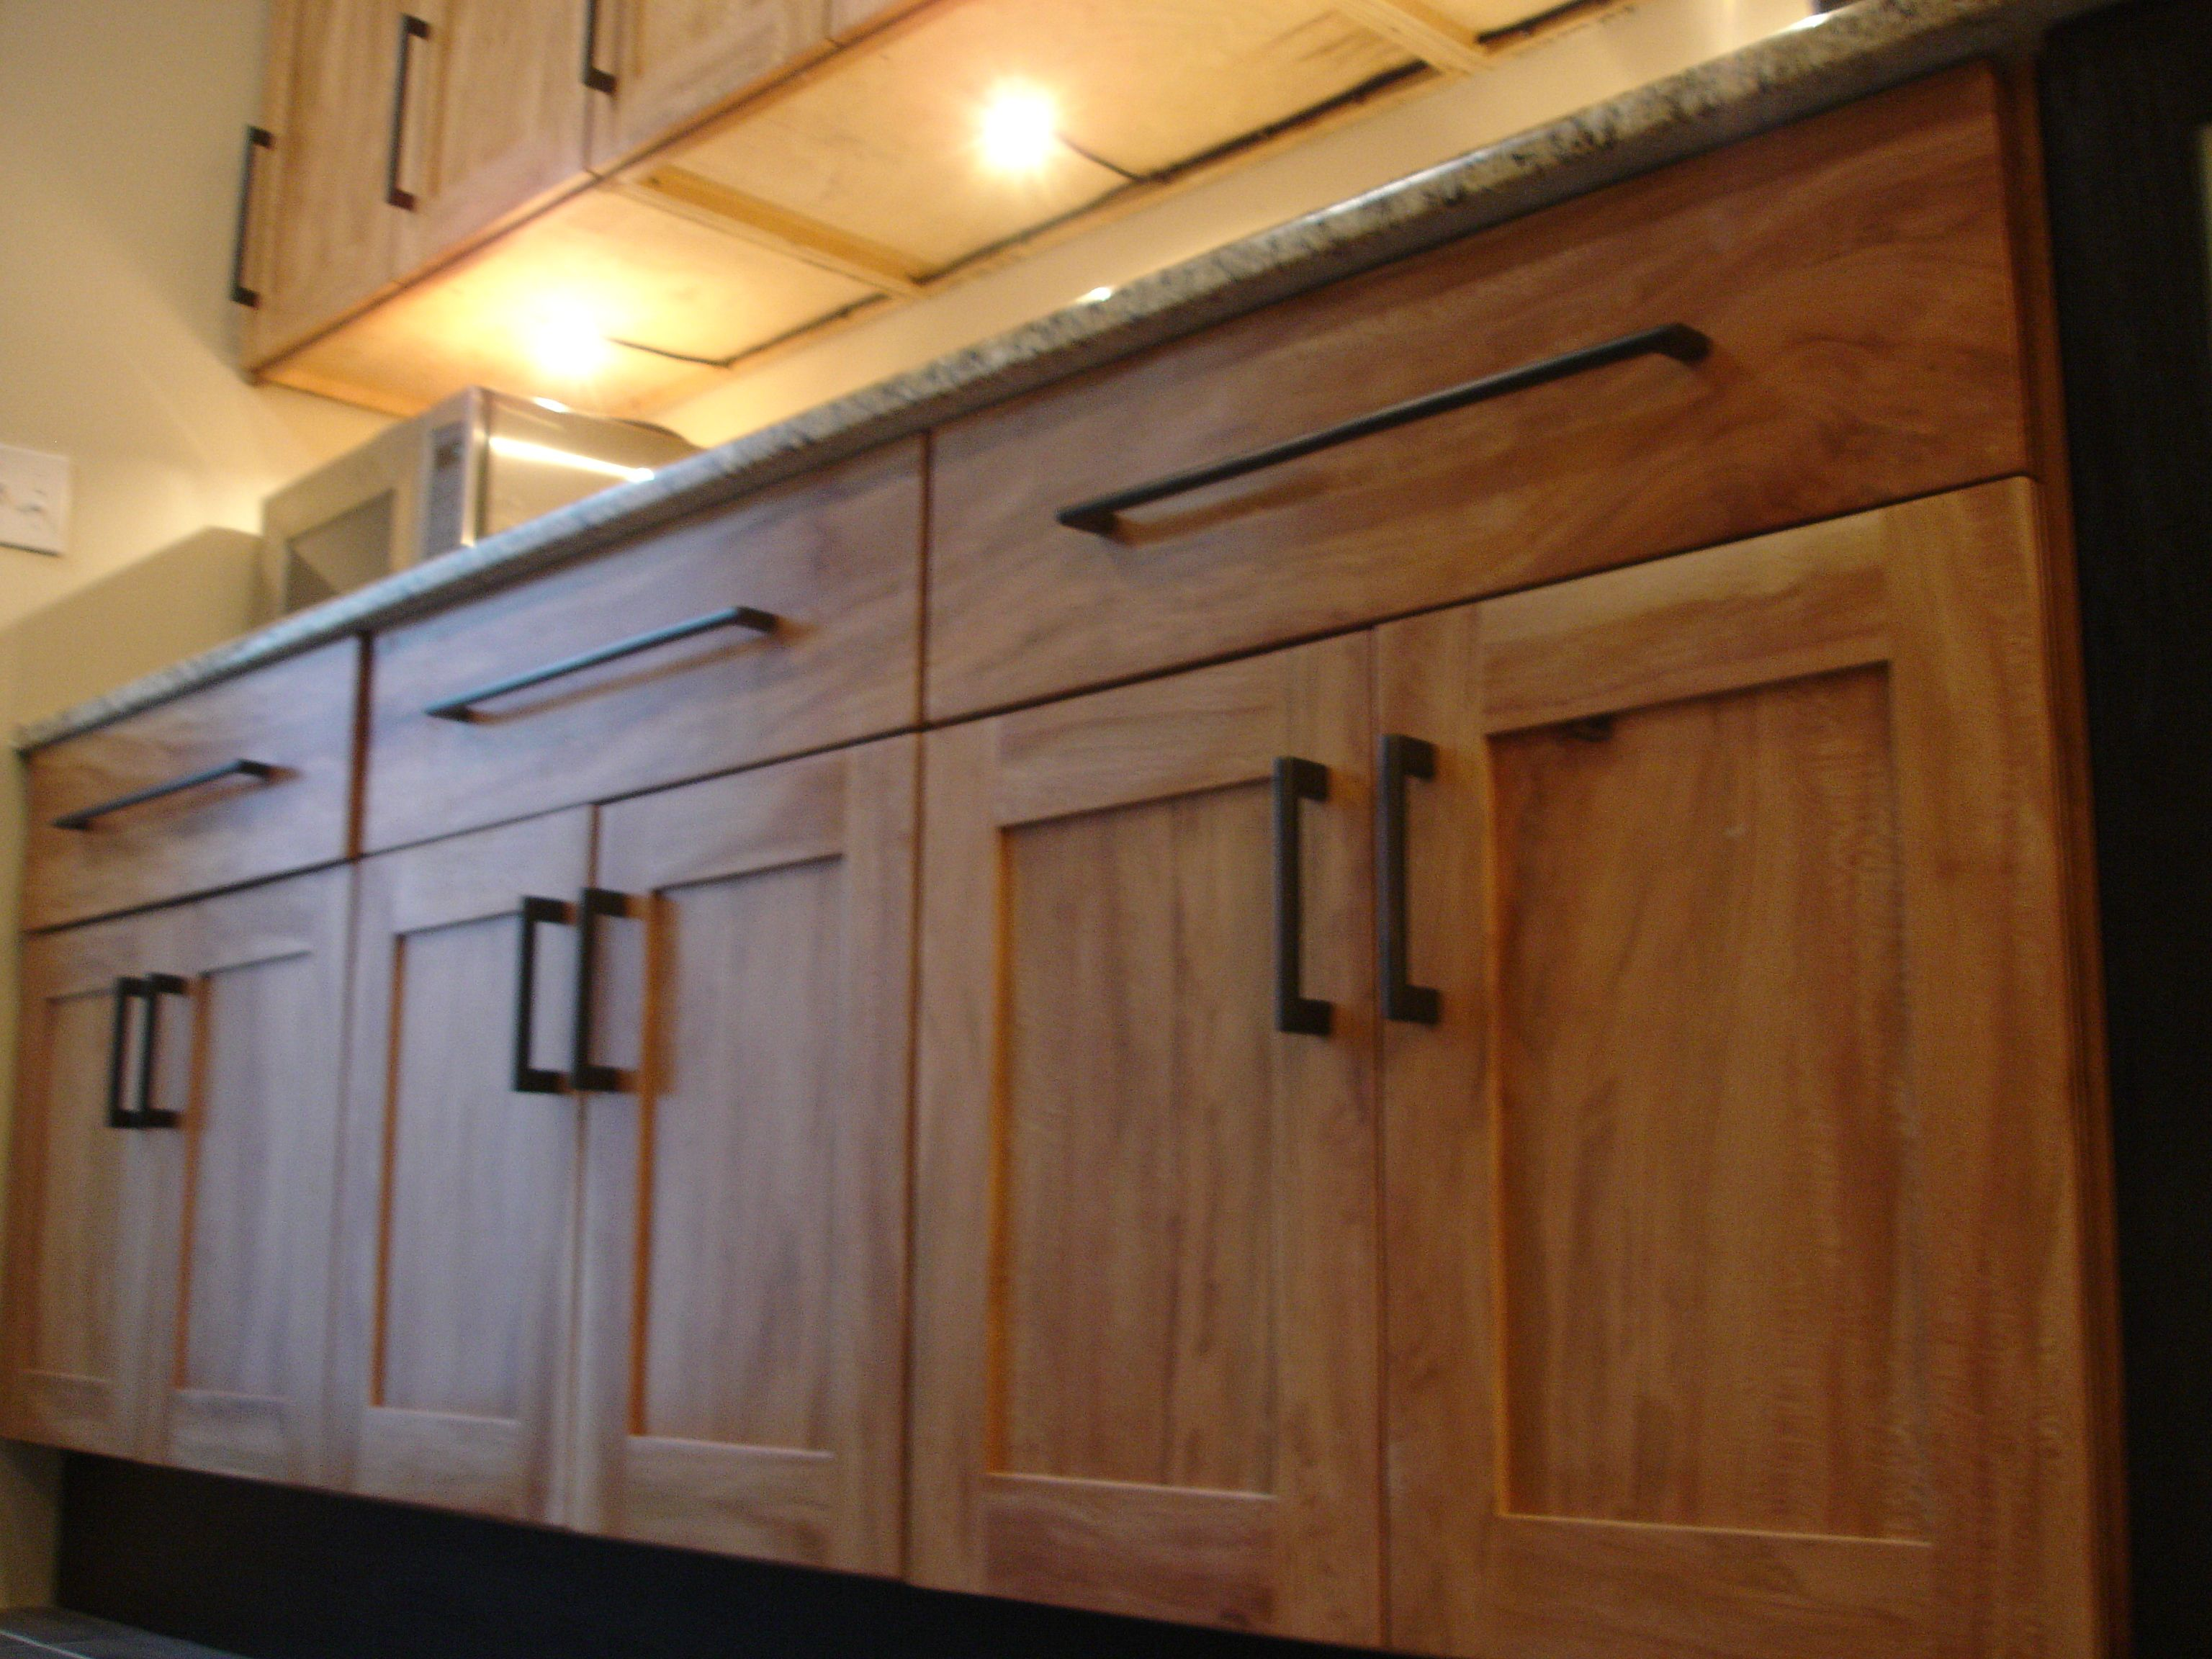 Cabinets quarter sawn while oak | the dream home | Pinterest ...